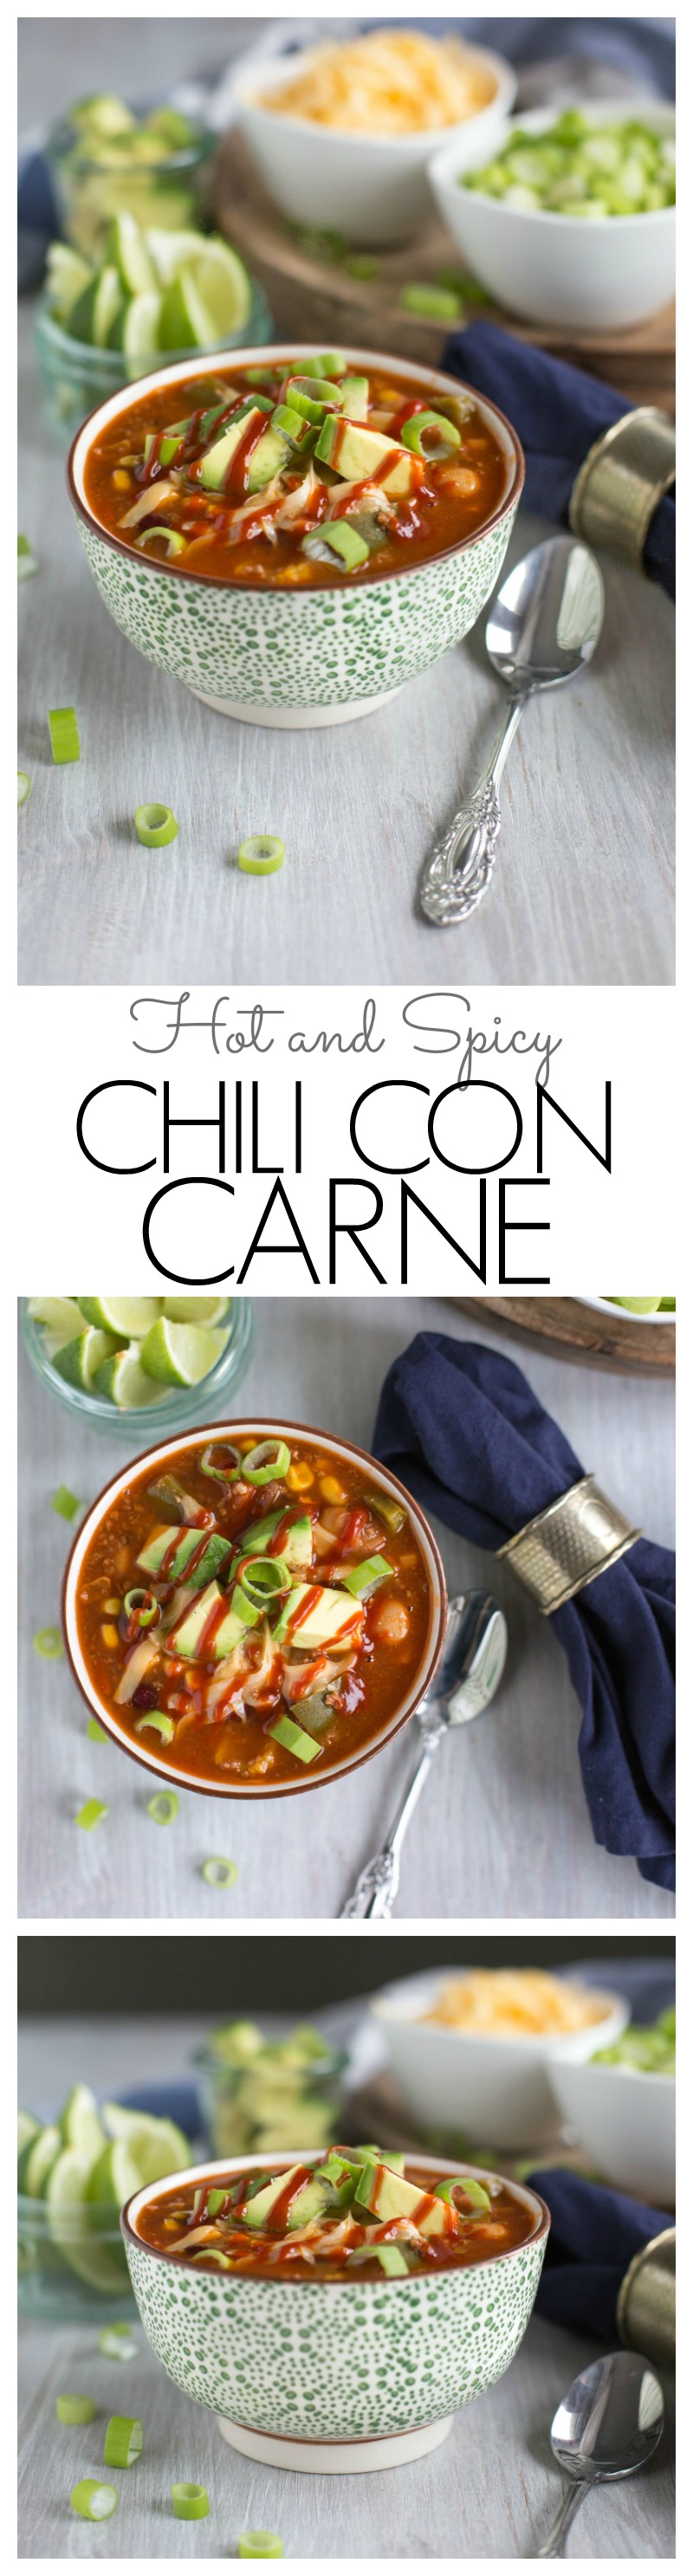 Hot and Spicy Chili con Carne